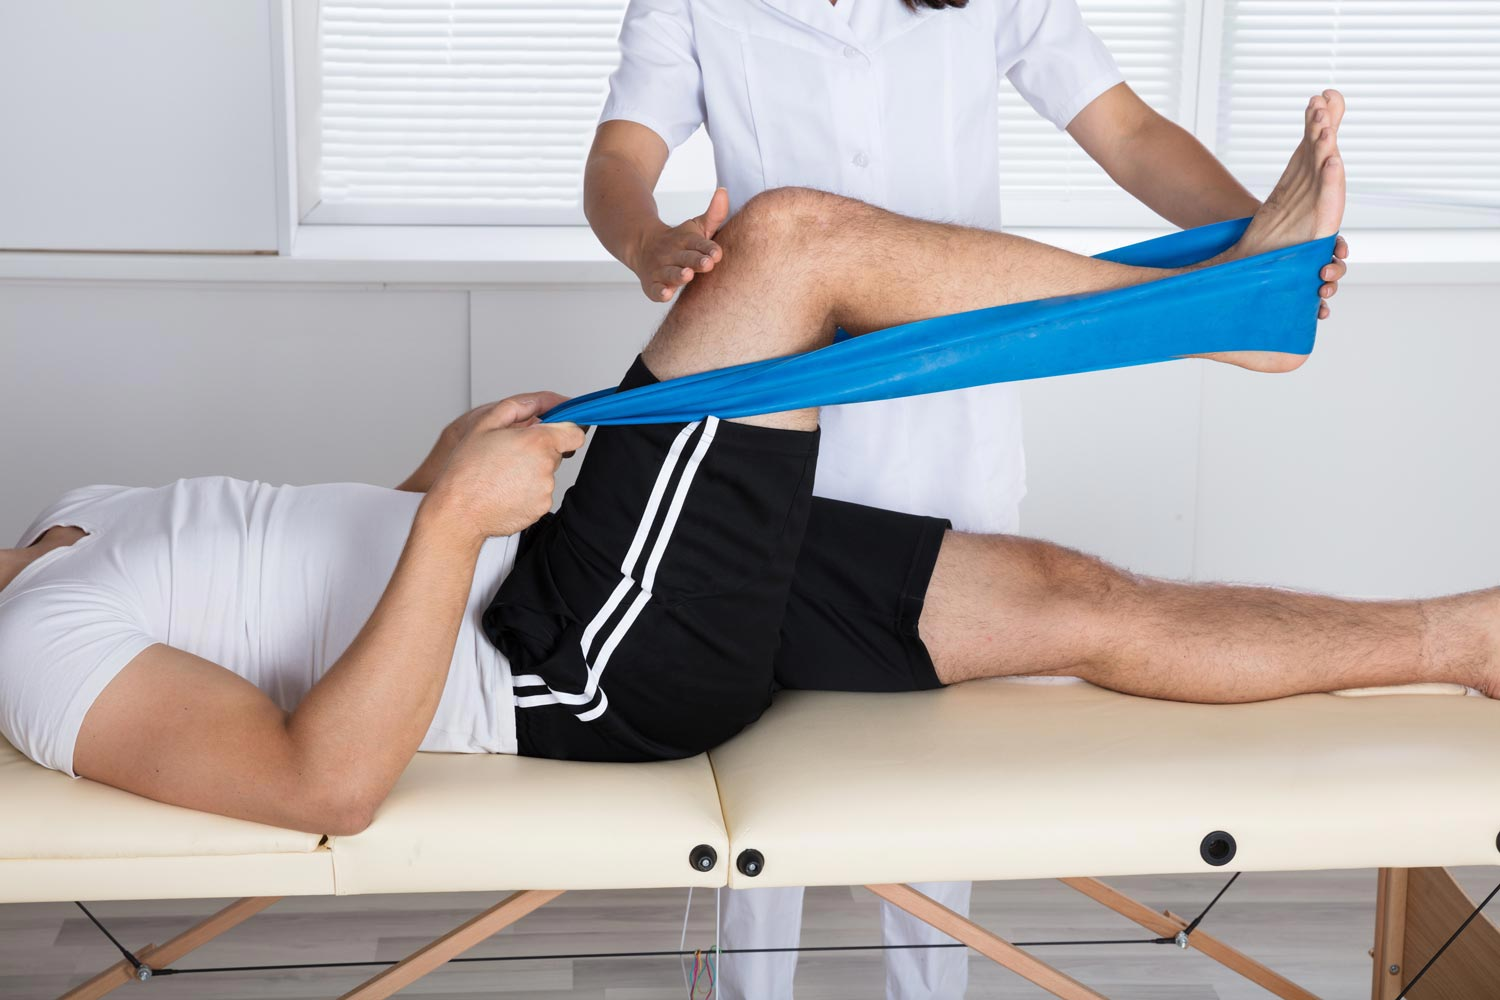 Physical therapy session, stretching out leg muscles